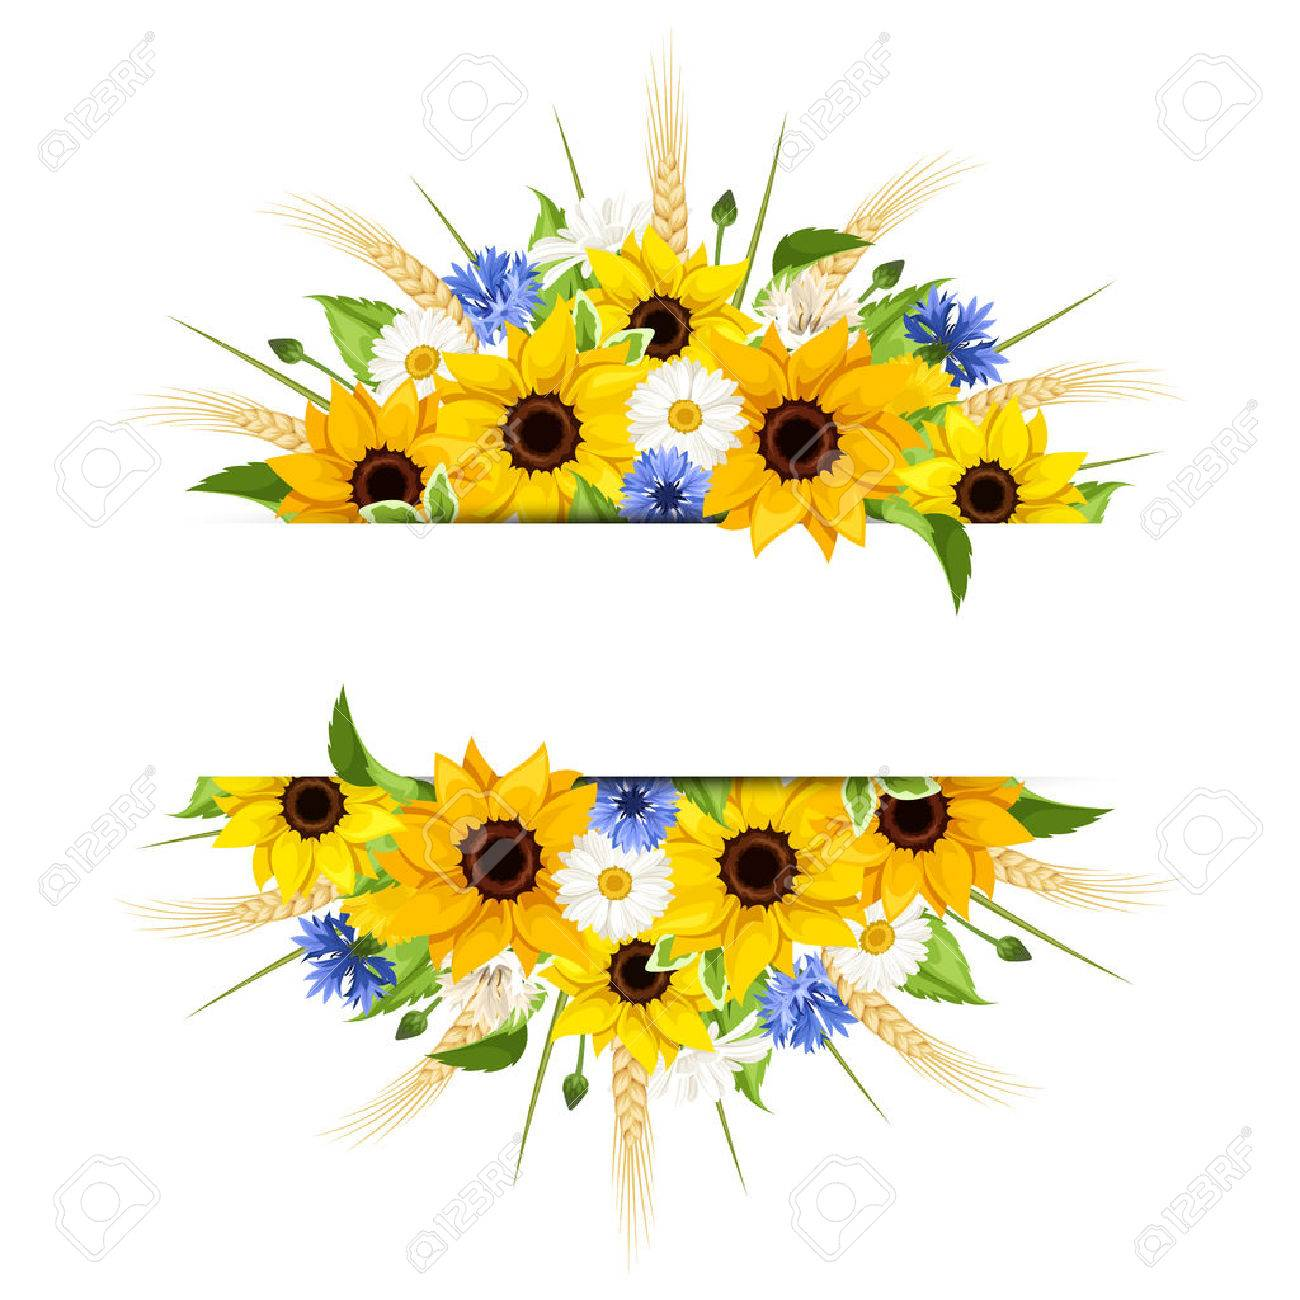 Vector Background Of Sunflowers Daisies Cornflowers Ears Wheat And Leaves Isolated On